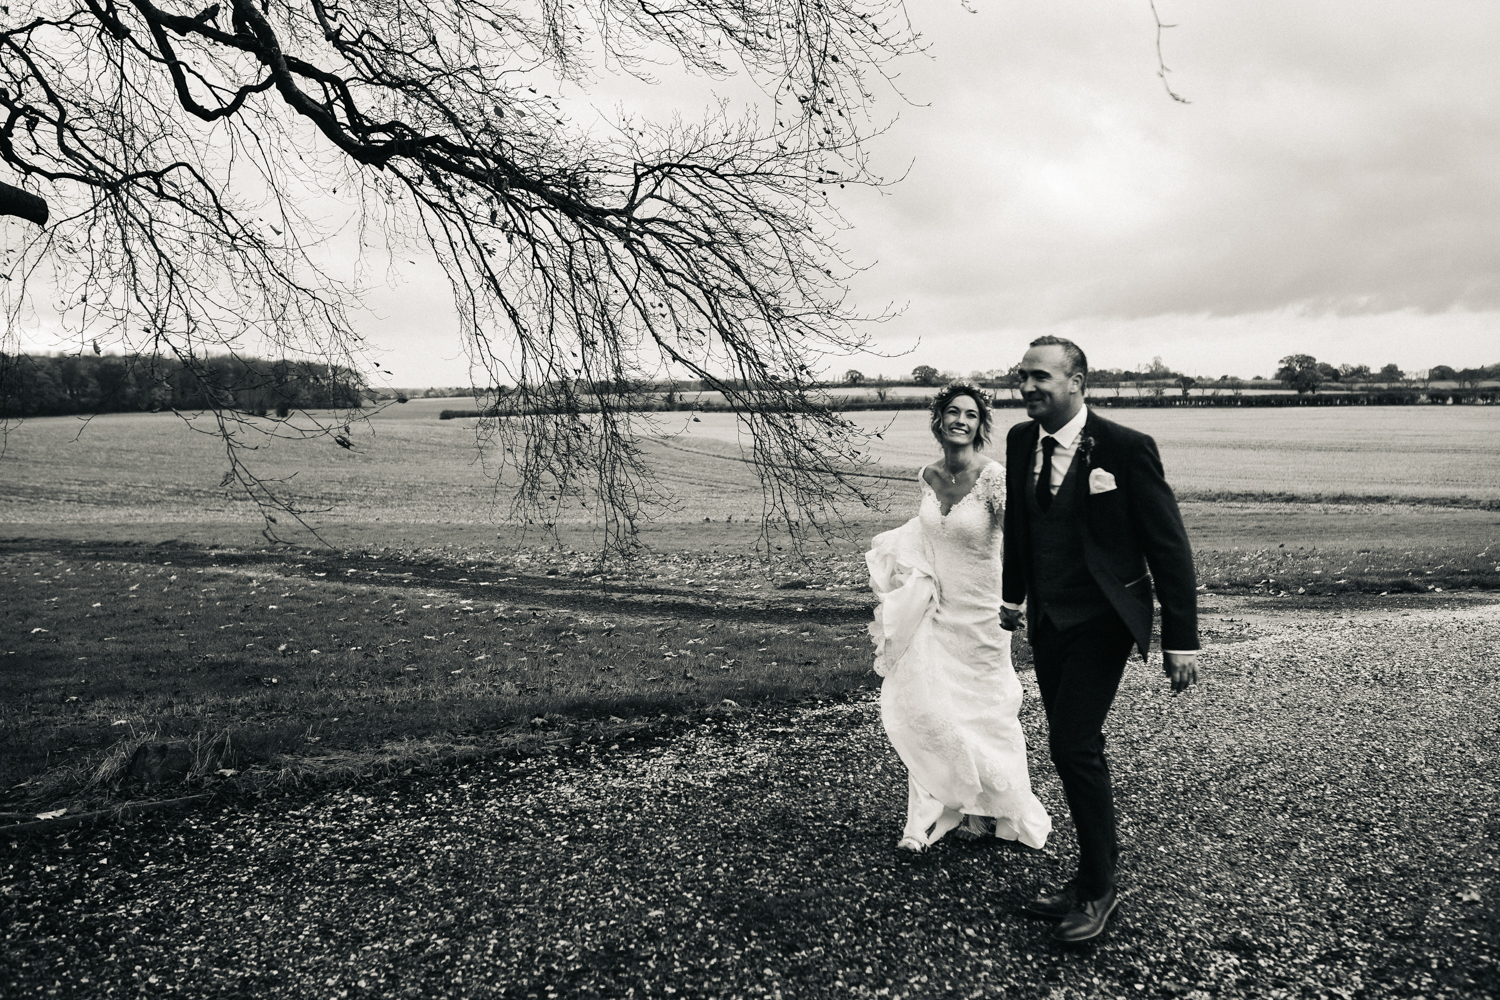 creative-relaxed-wedding-photography-stop-motion-films-teesside-north-east-yorkshire-0046.jpg